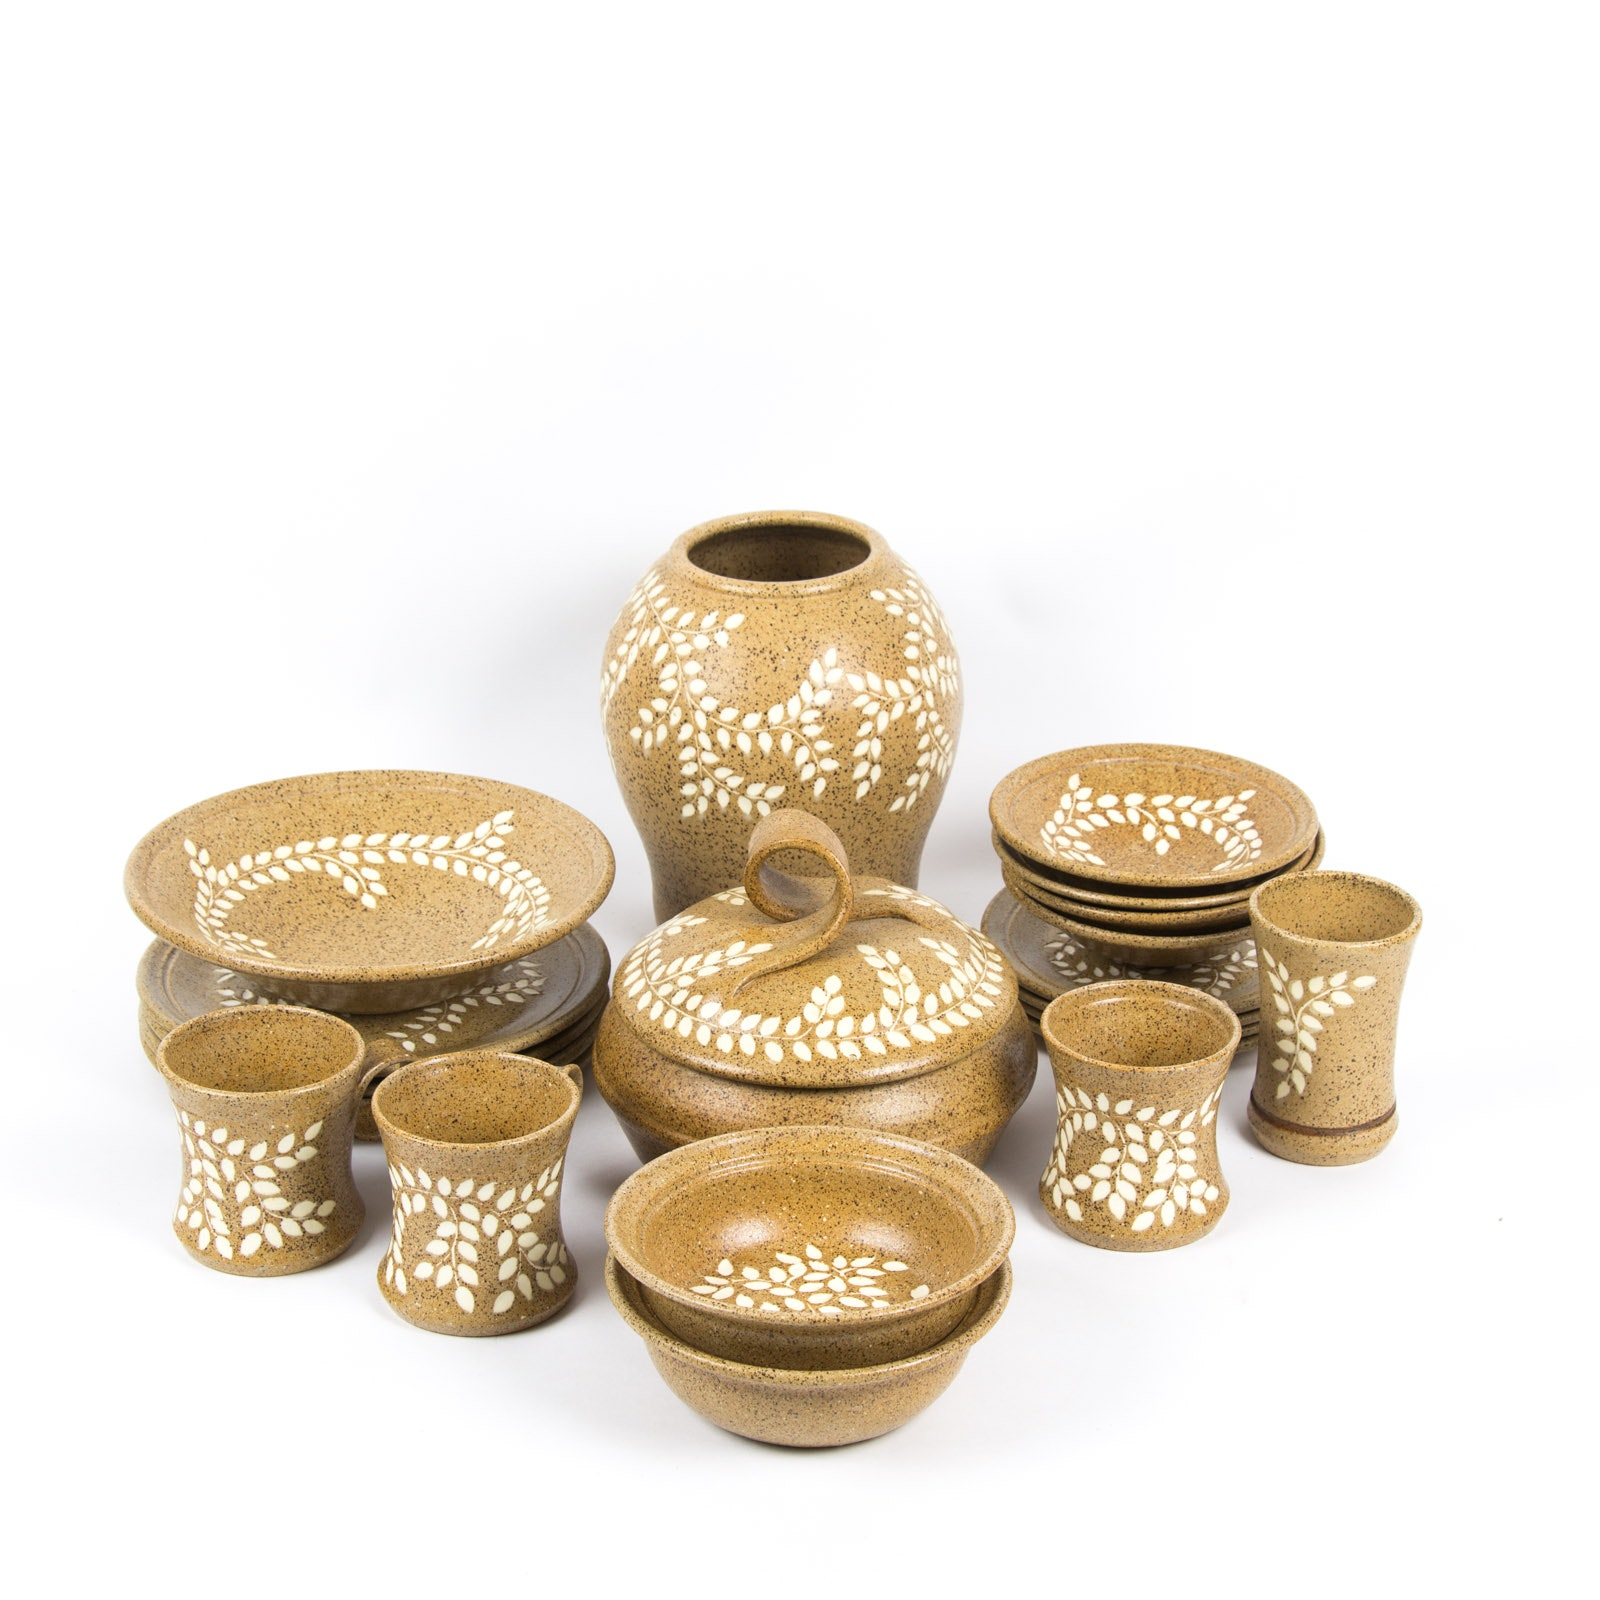 Hand Thrown Stoneware Tableware Collection